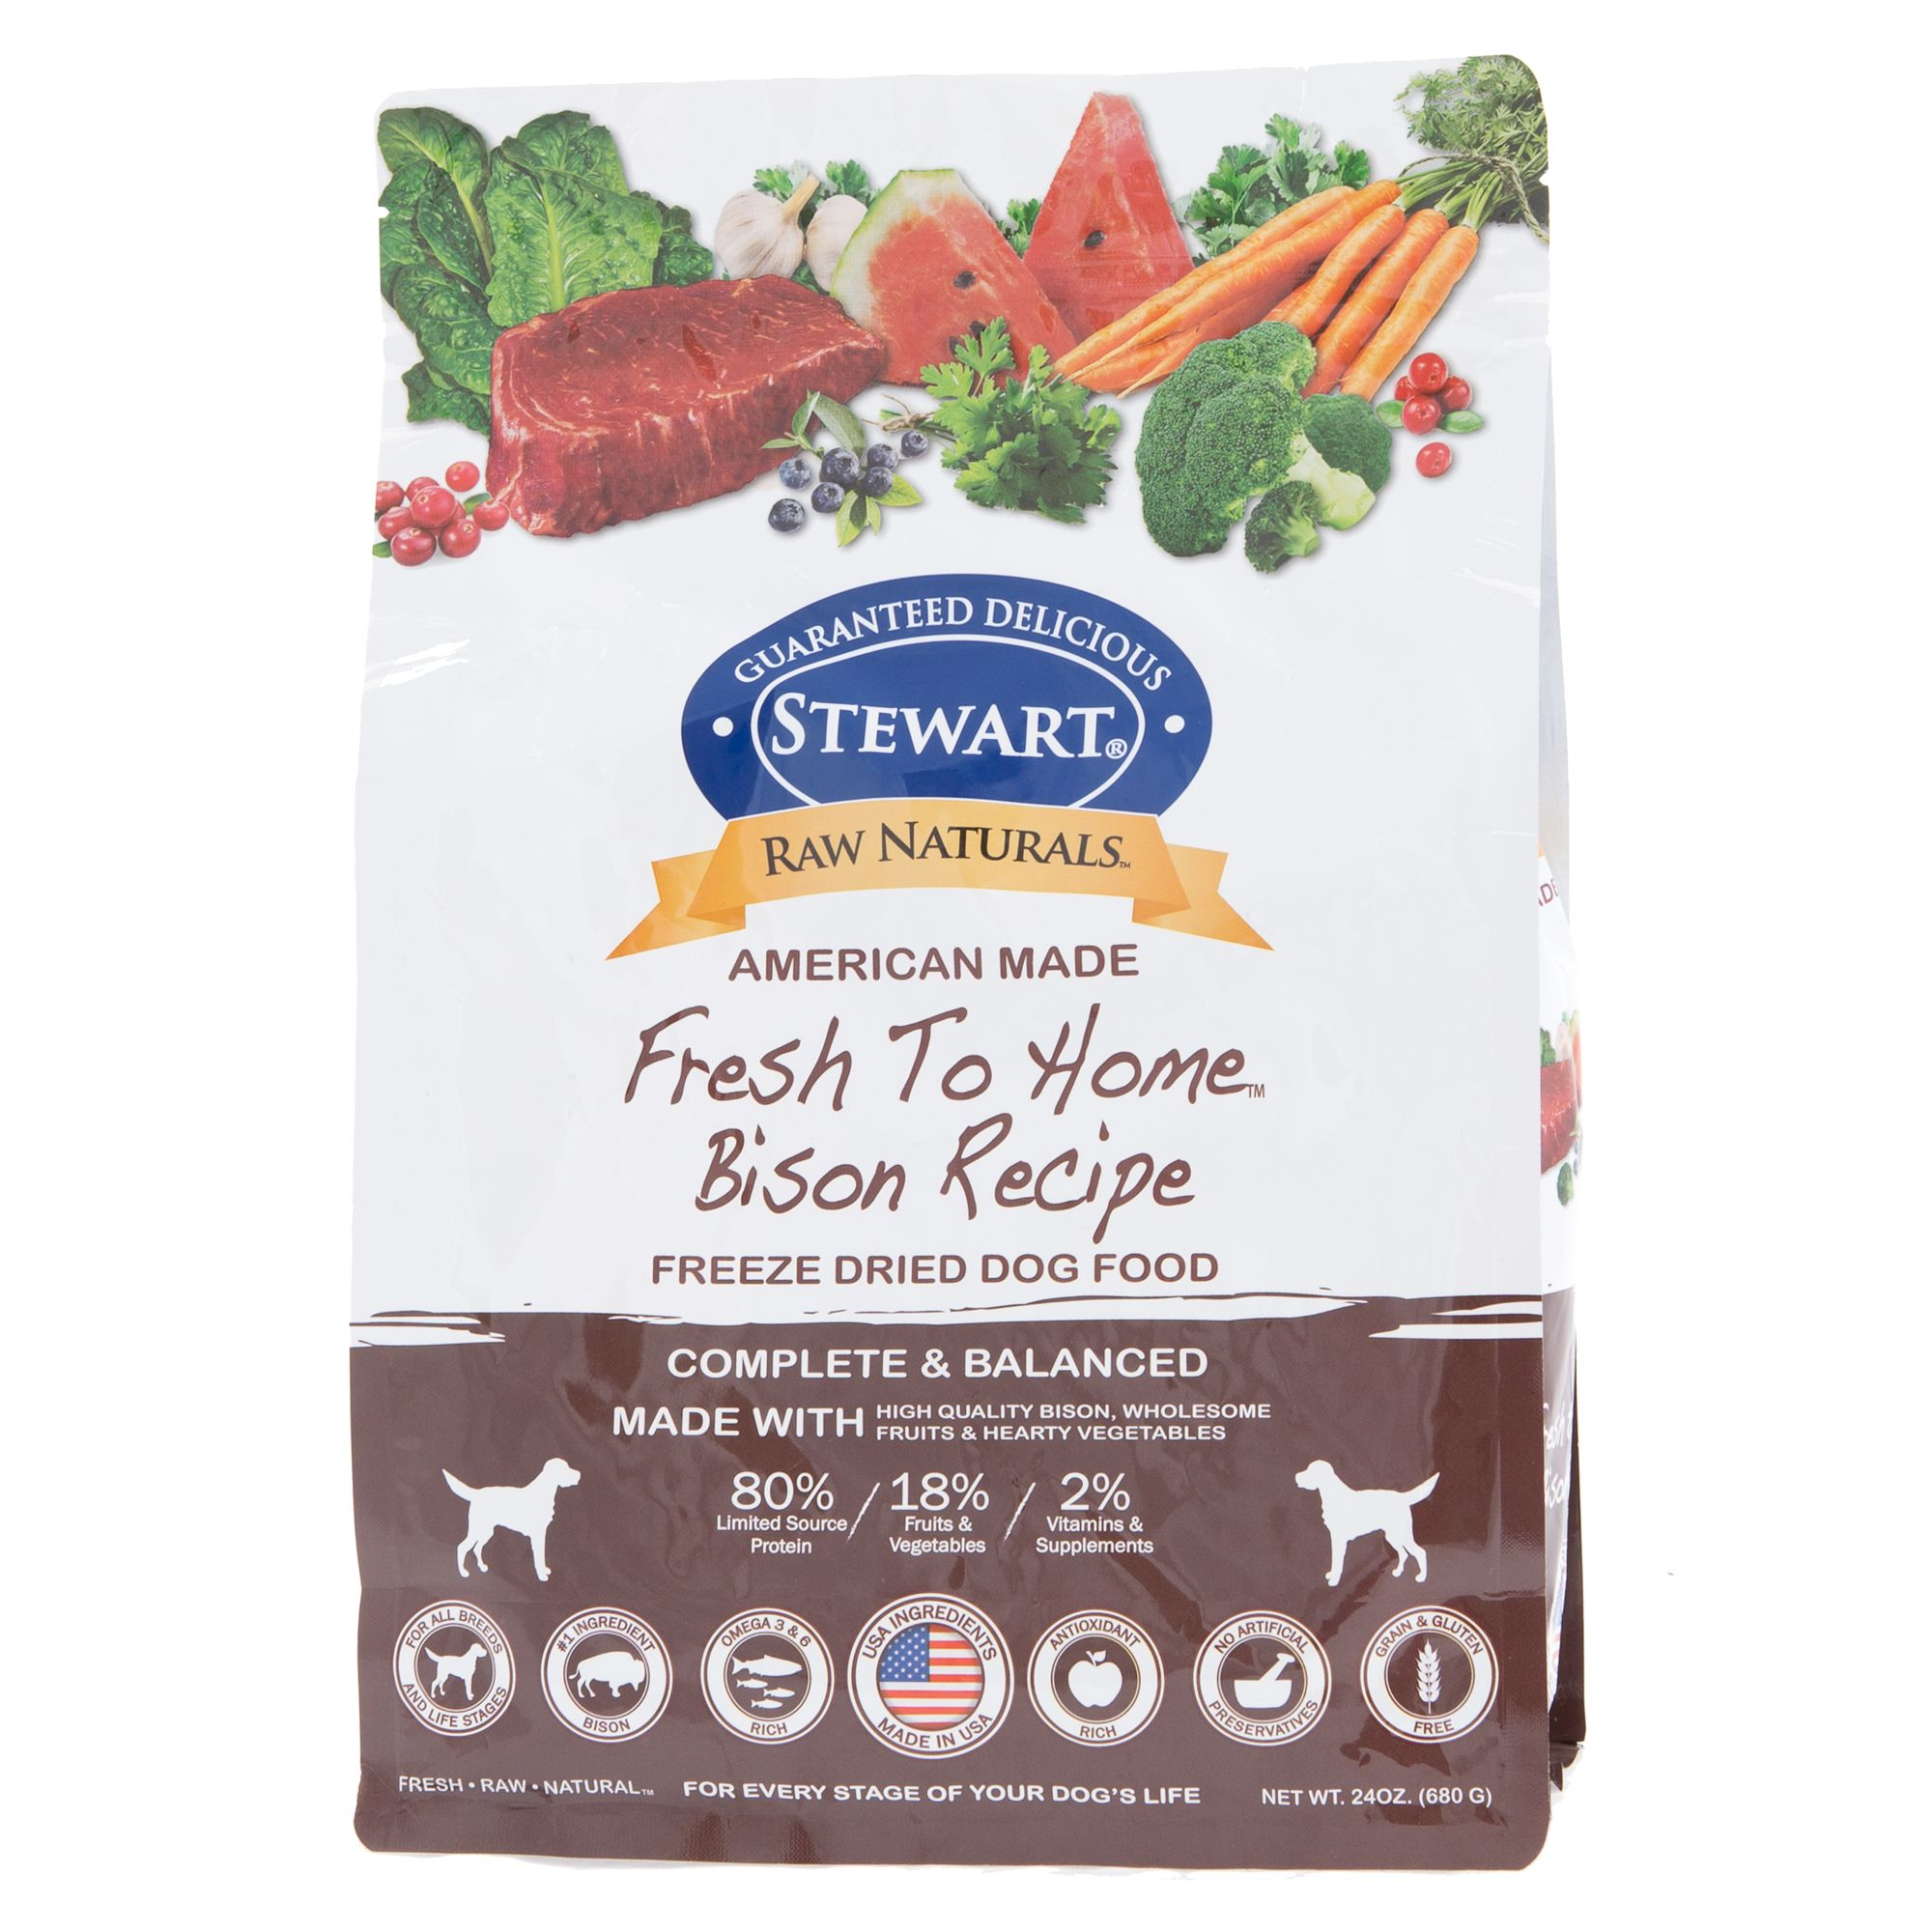 Stewart Raw Naturals Dog Food Freeze Dried Bison Size 24 Oz